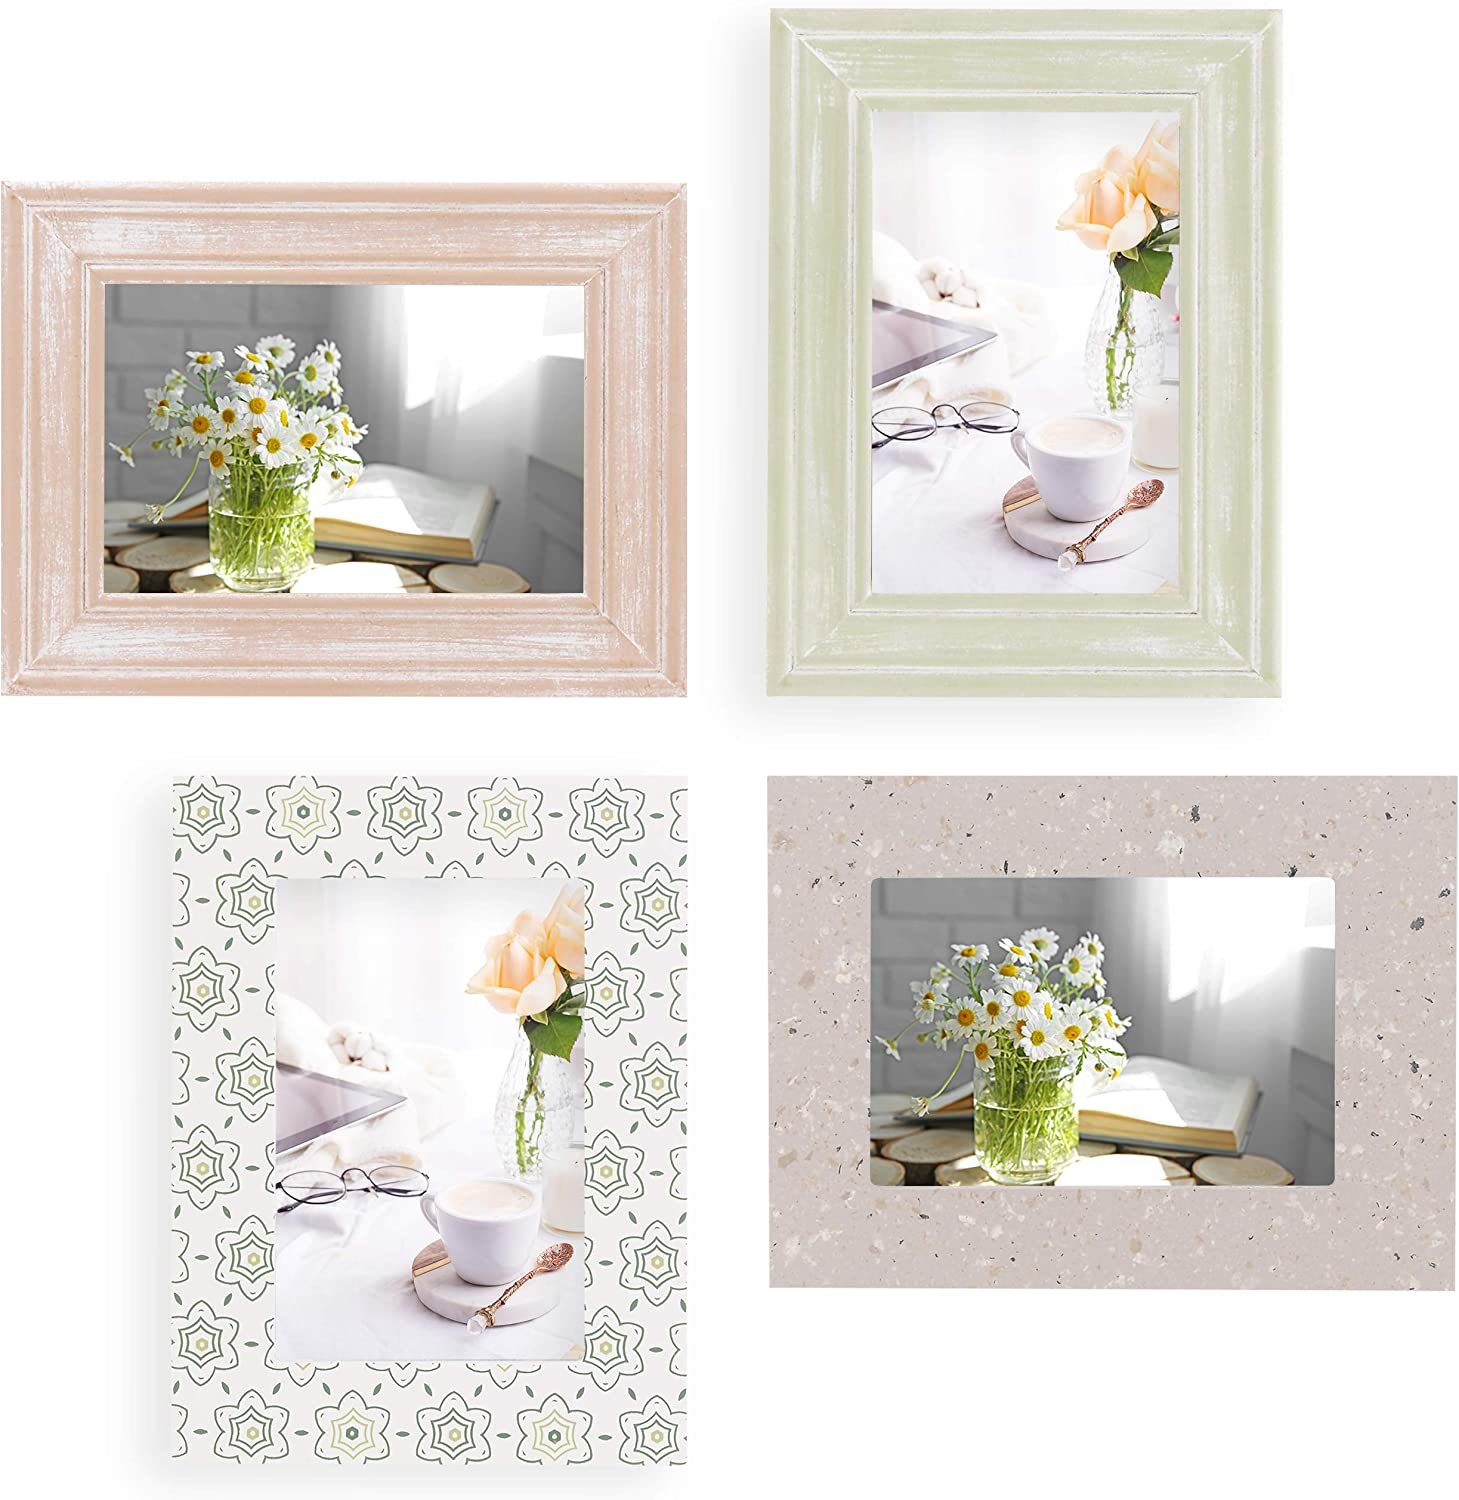 Topics on TV 4x6 Picture Frames Frame Set of 4 For Wood - Austin Mall T Wall Collage